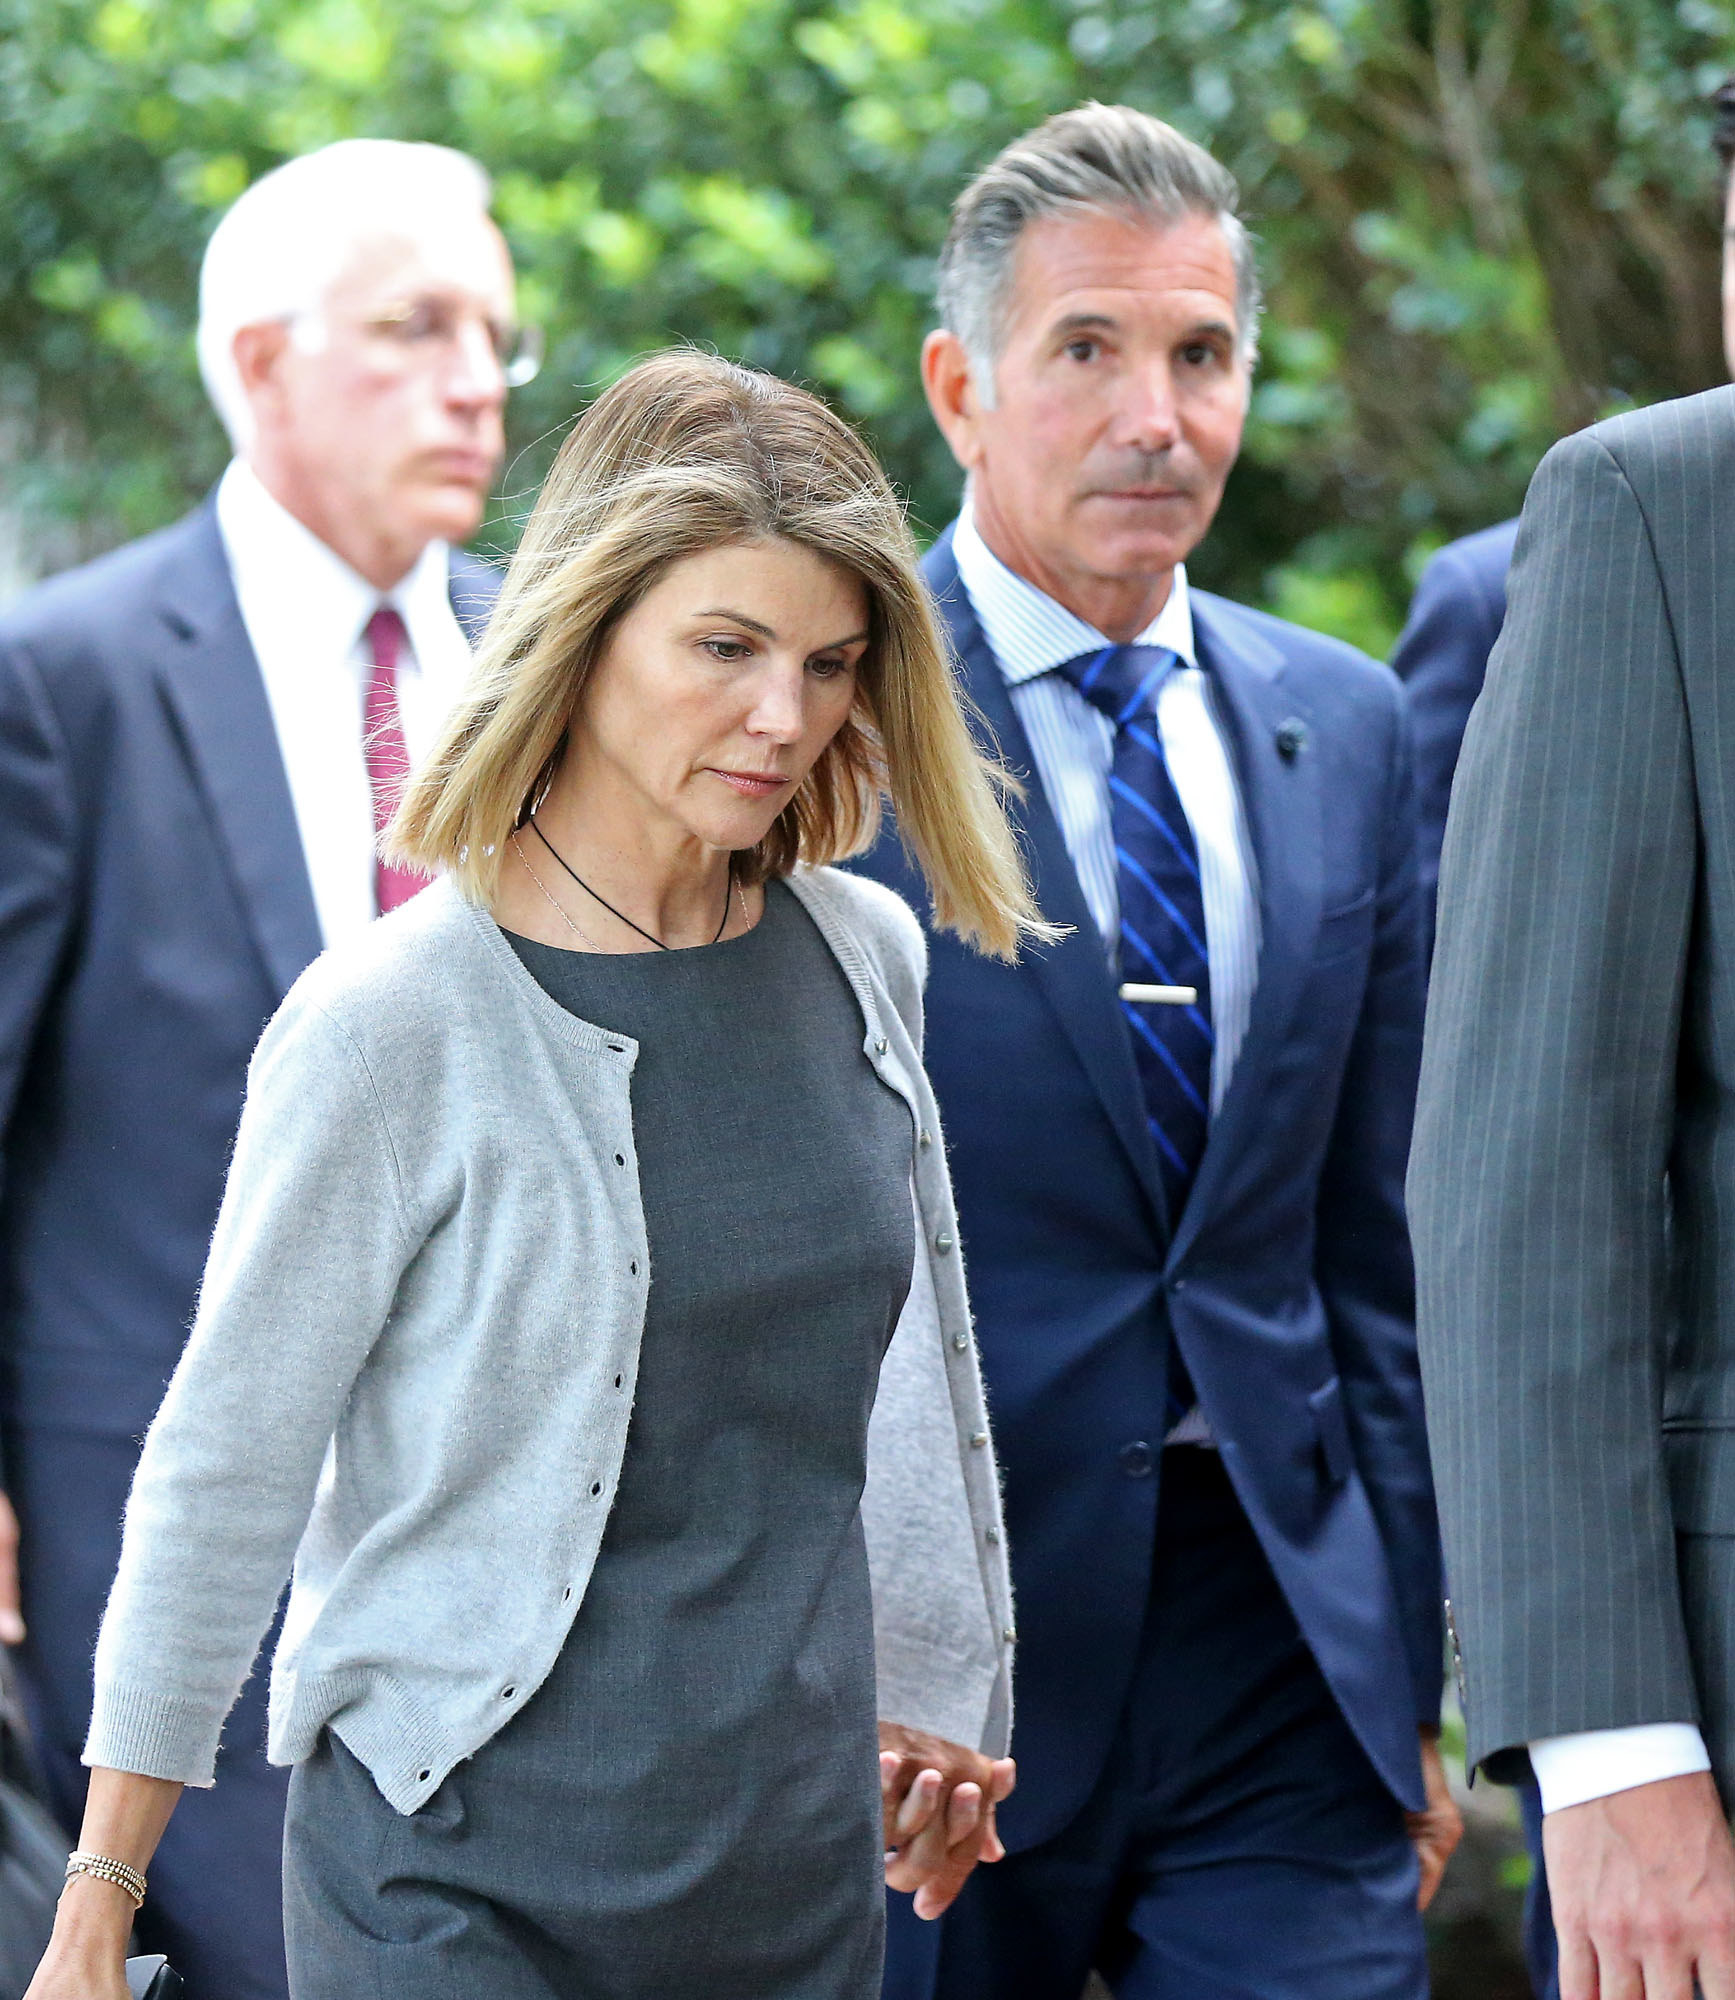 Lori Loughlin and Mossimo Giannulli leave Moakley Federal Courthouse in August 2019